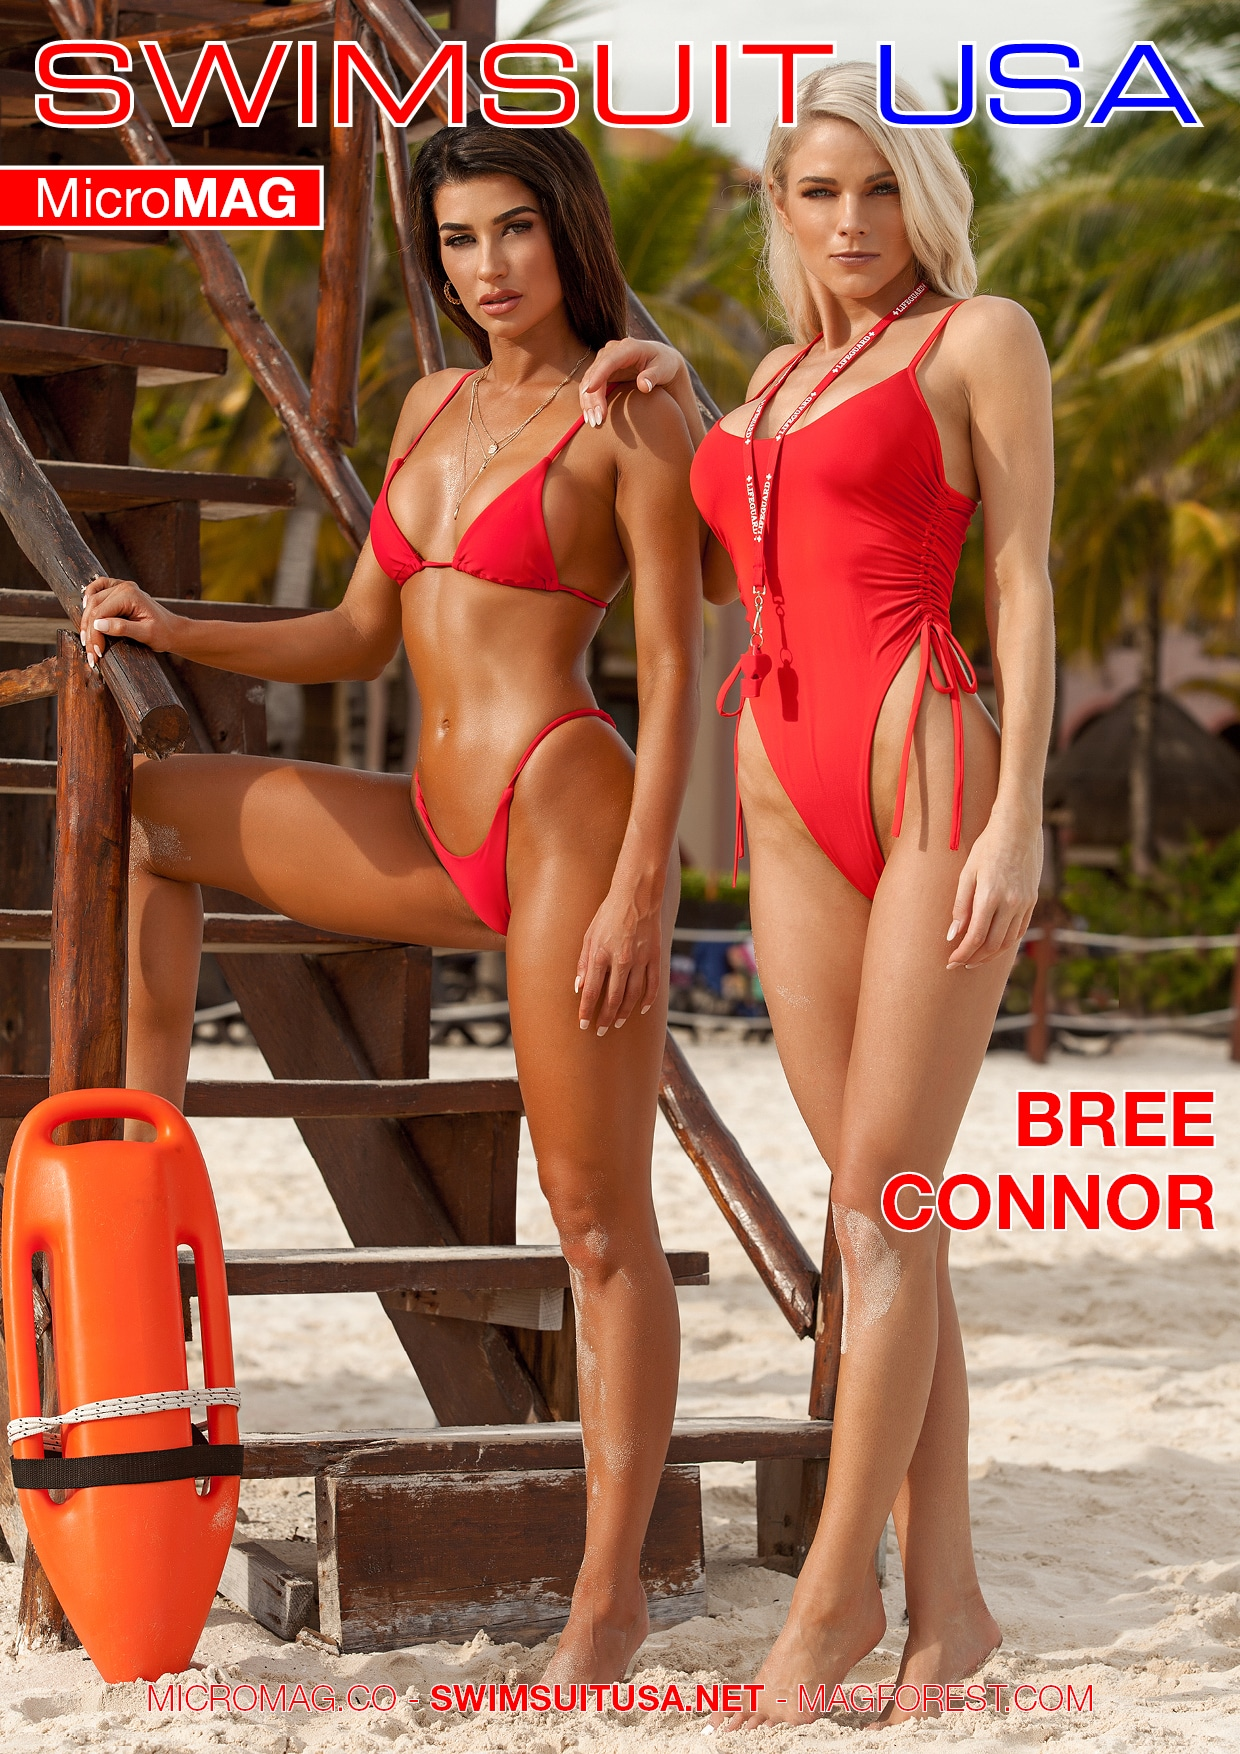 Swimsuit USA MicroMAG - Bree Connor - Issue 4 2